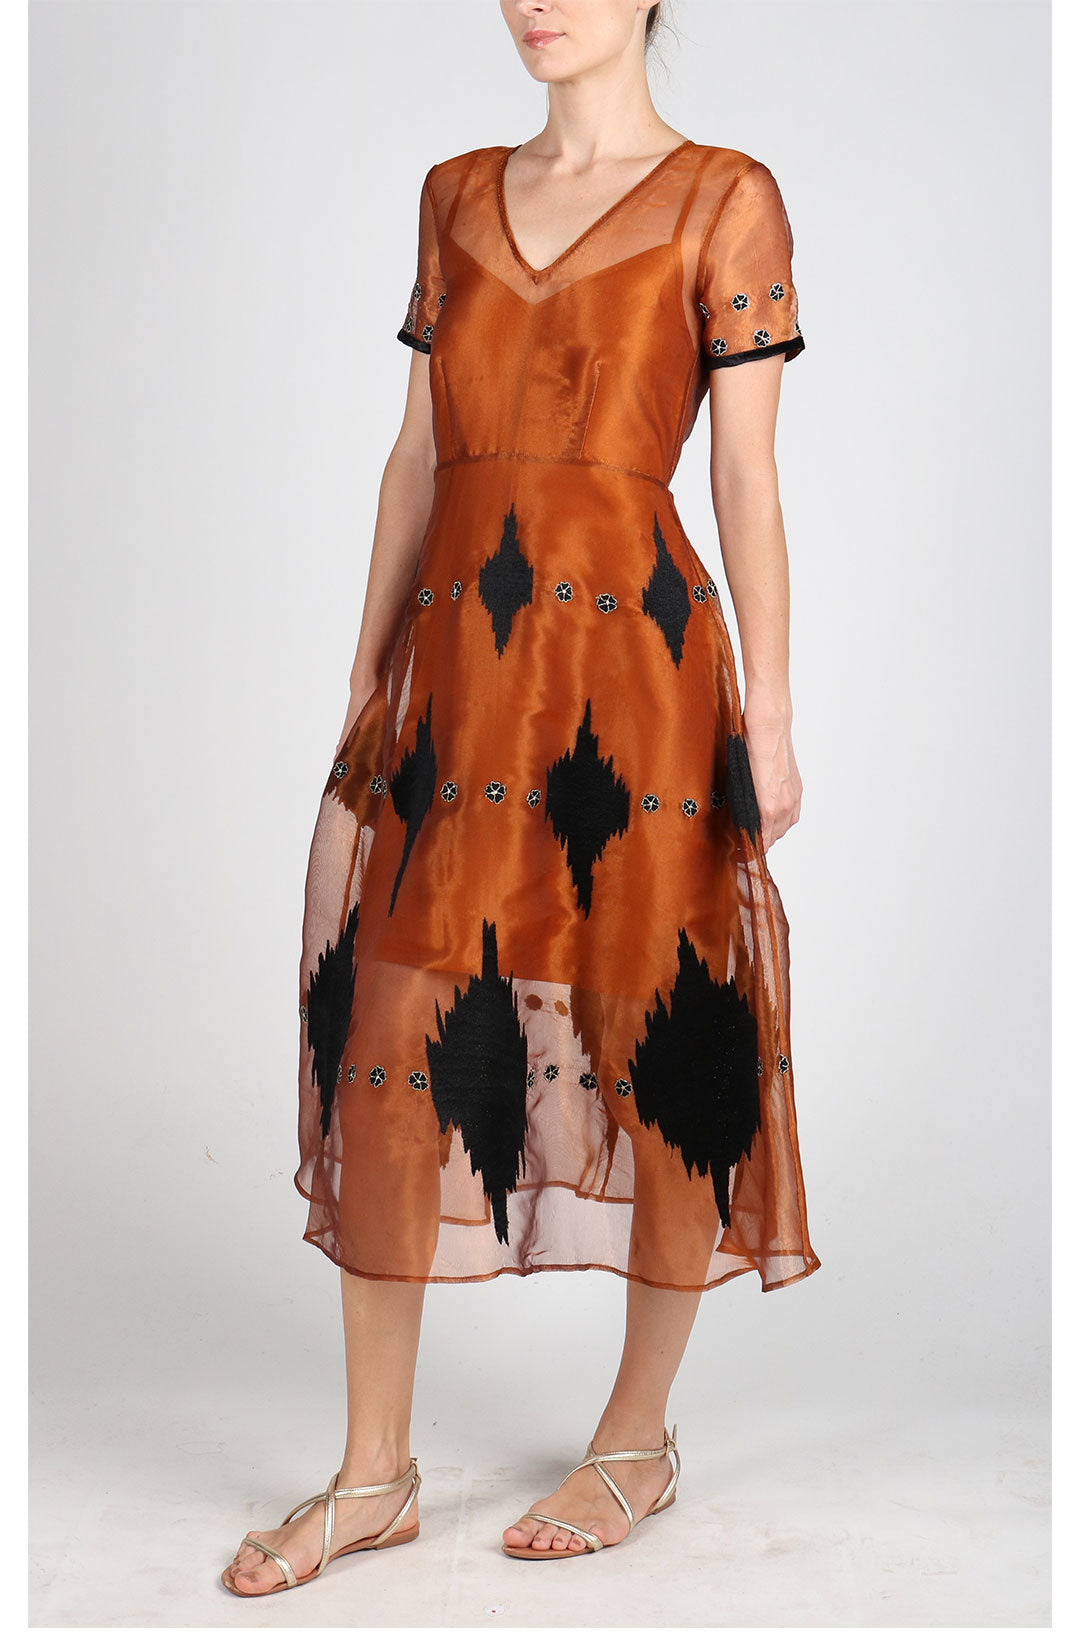 Fanm Mon SAJIN Silk Organza Copper Linen Black Geometric Embroidered MIDI Dress Vyshyvanka